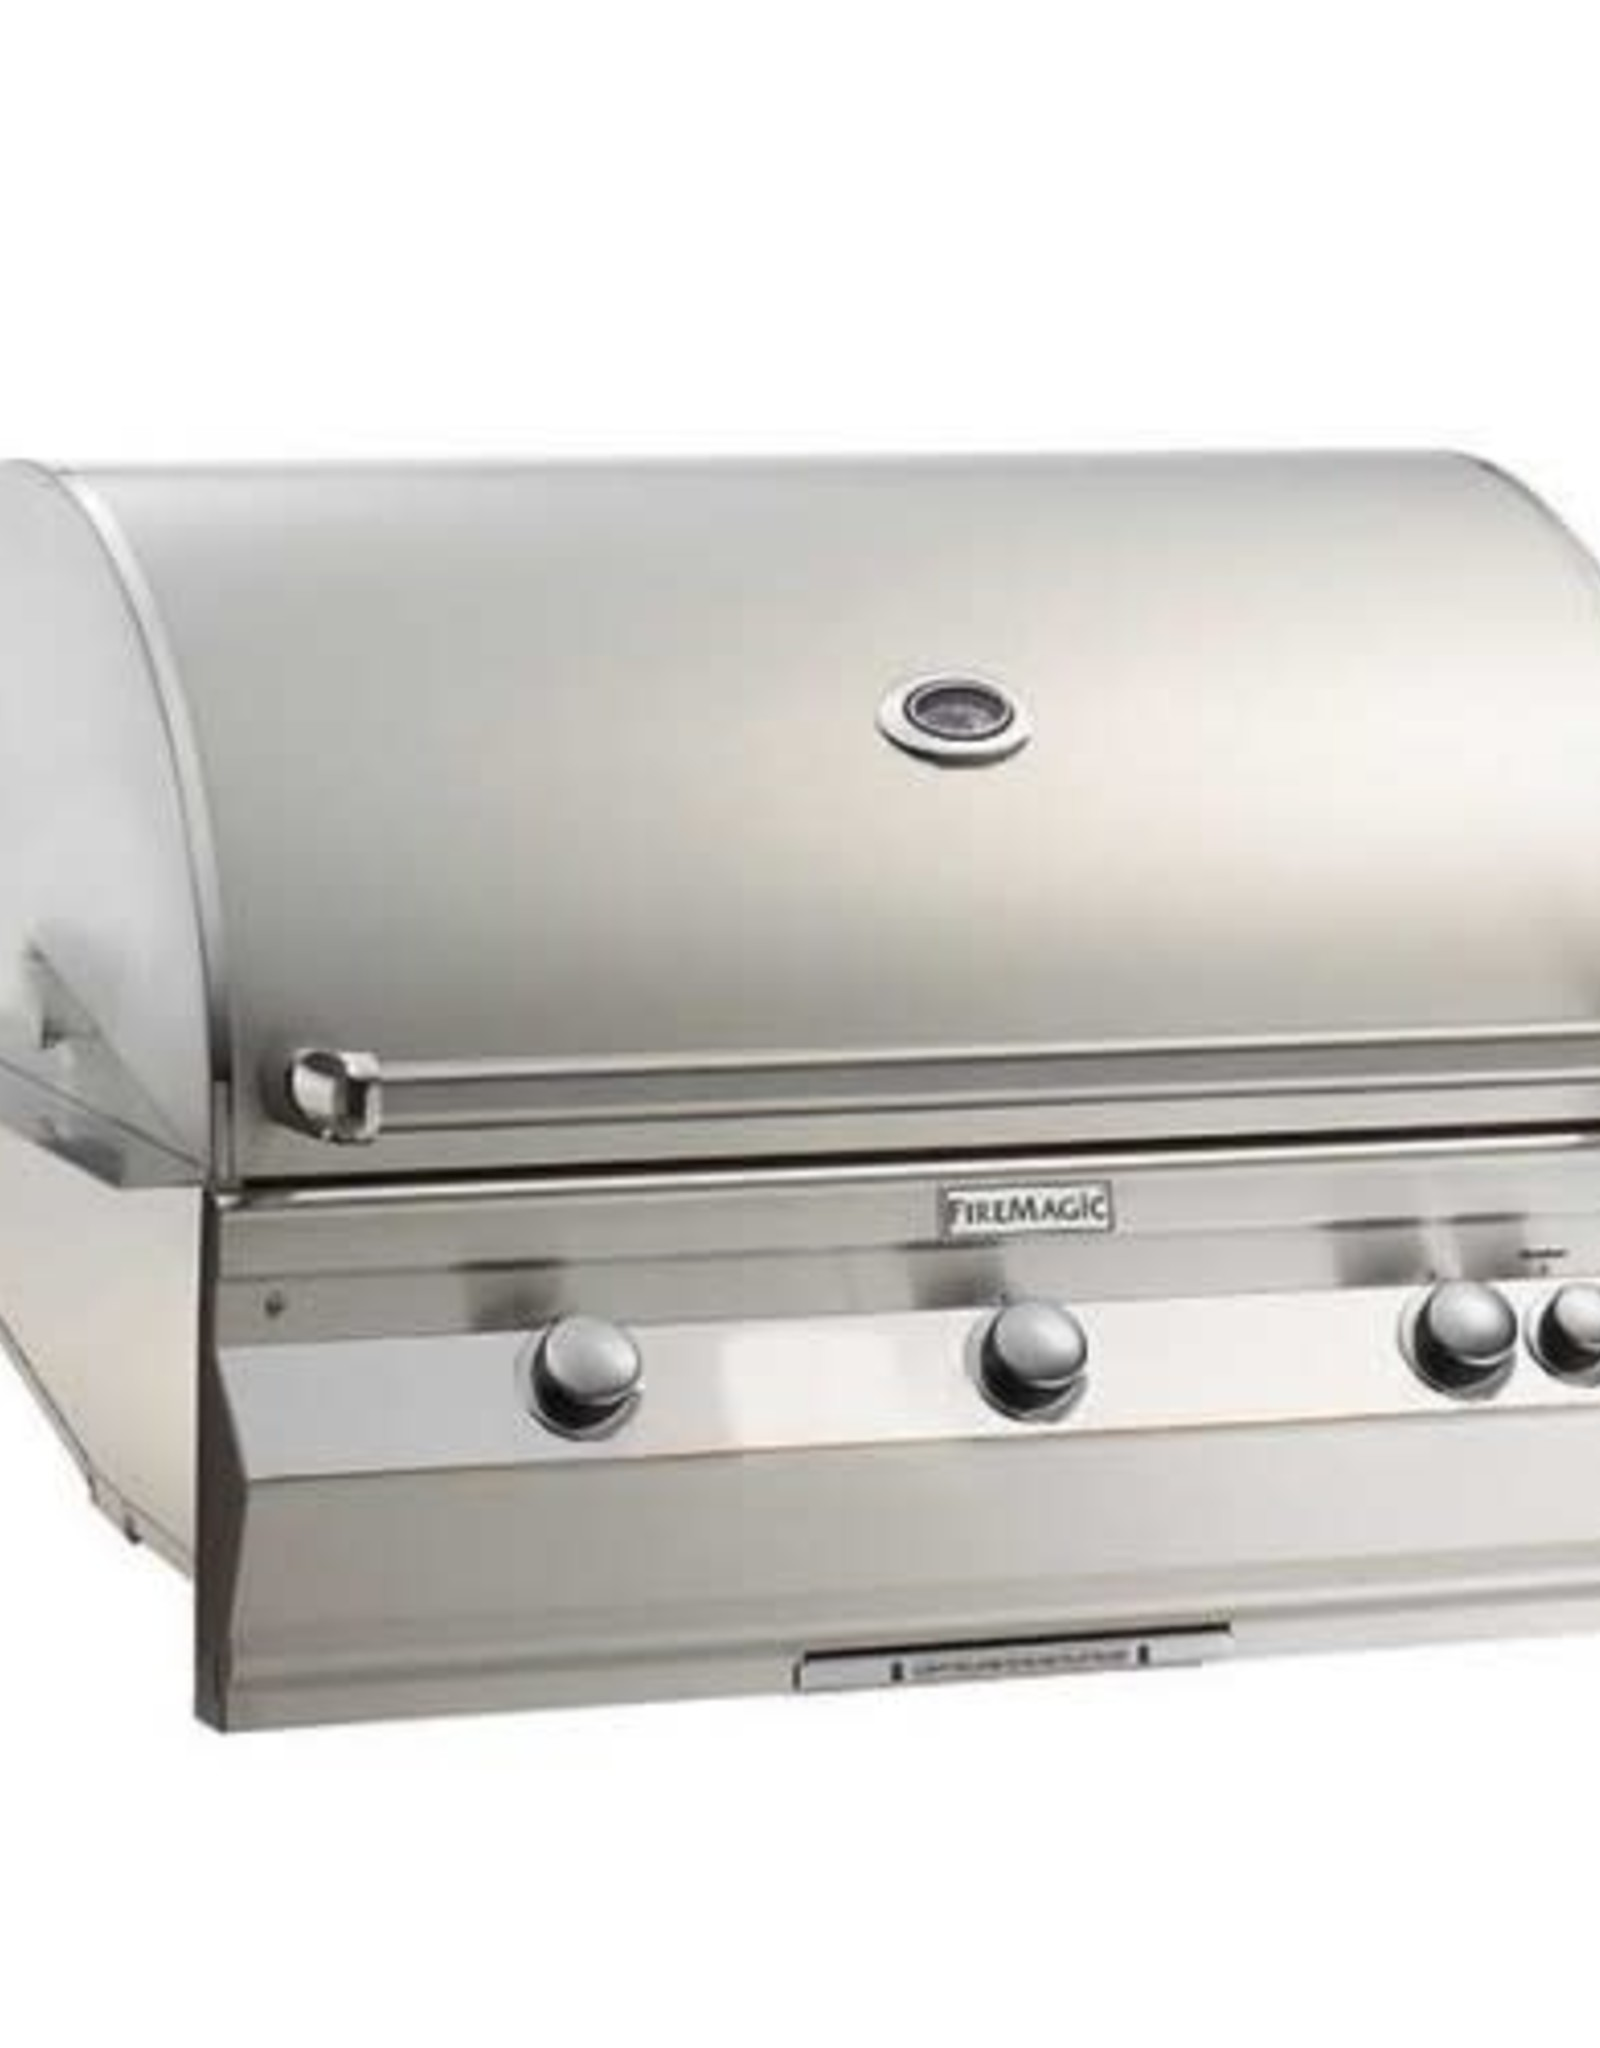 Fire Magic Fire Magic - Aurora A790i 36-inch Built-In Grill Without Rotisserie